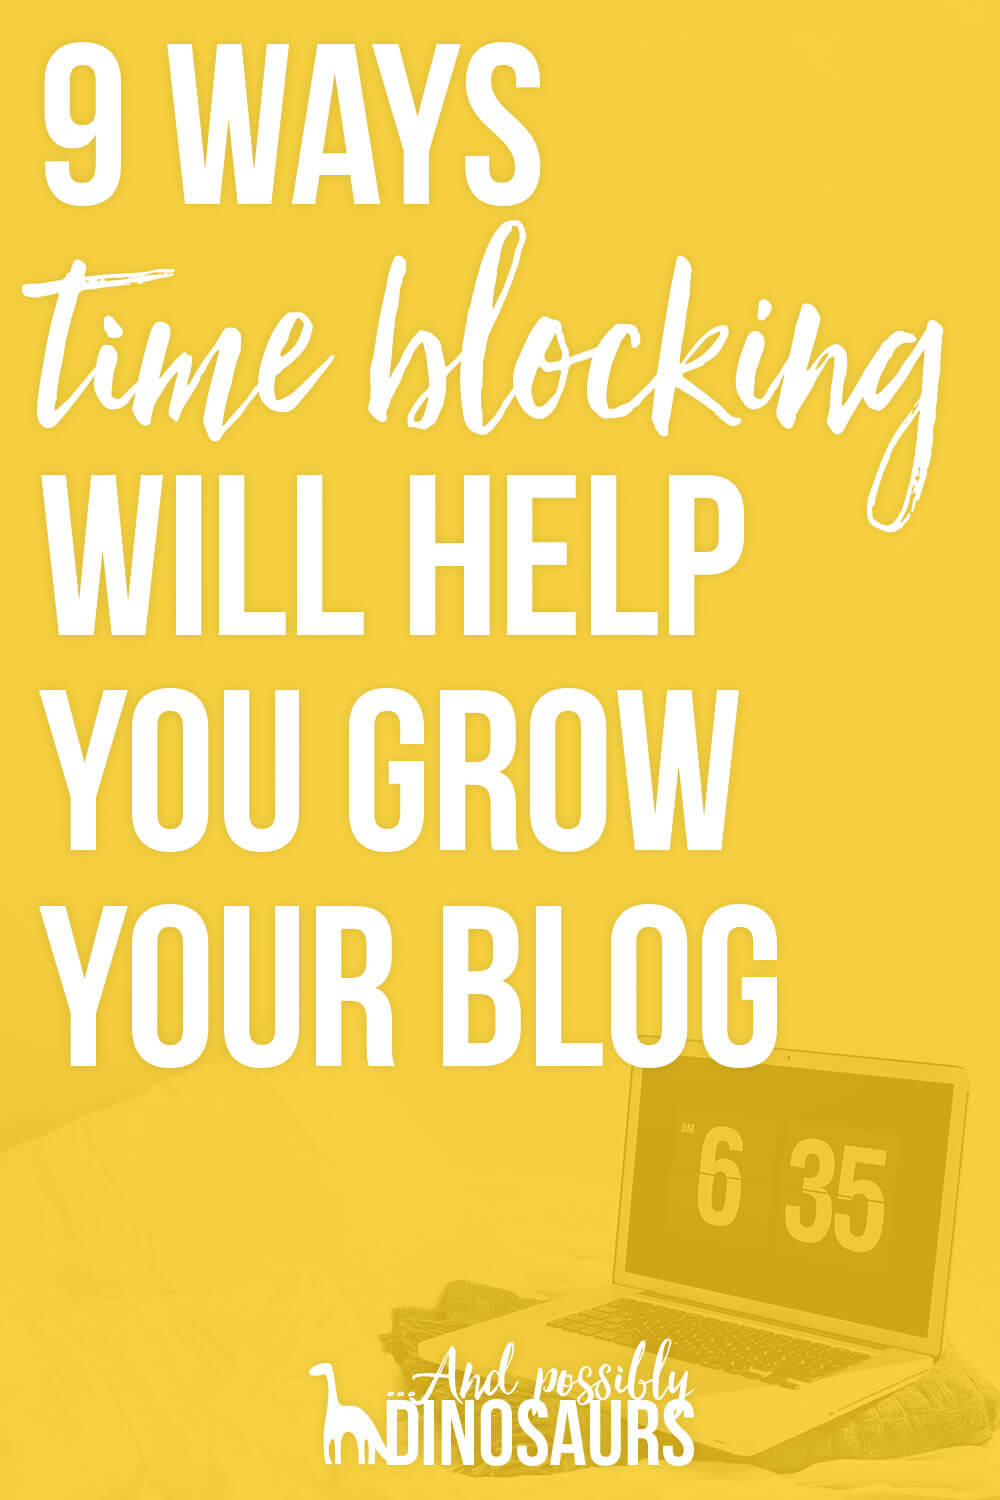 Feel like you're struggling to find the time to run your blog, let alone grow your blog? You're not alone! Here's a key blogging productivity tip for you: block schedule your time! Click through for the 9 ways time blocking will help you grow your blog.